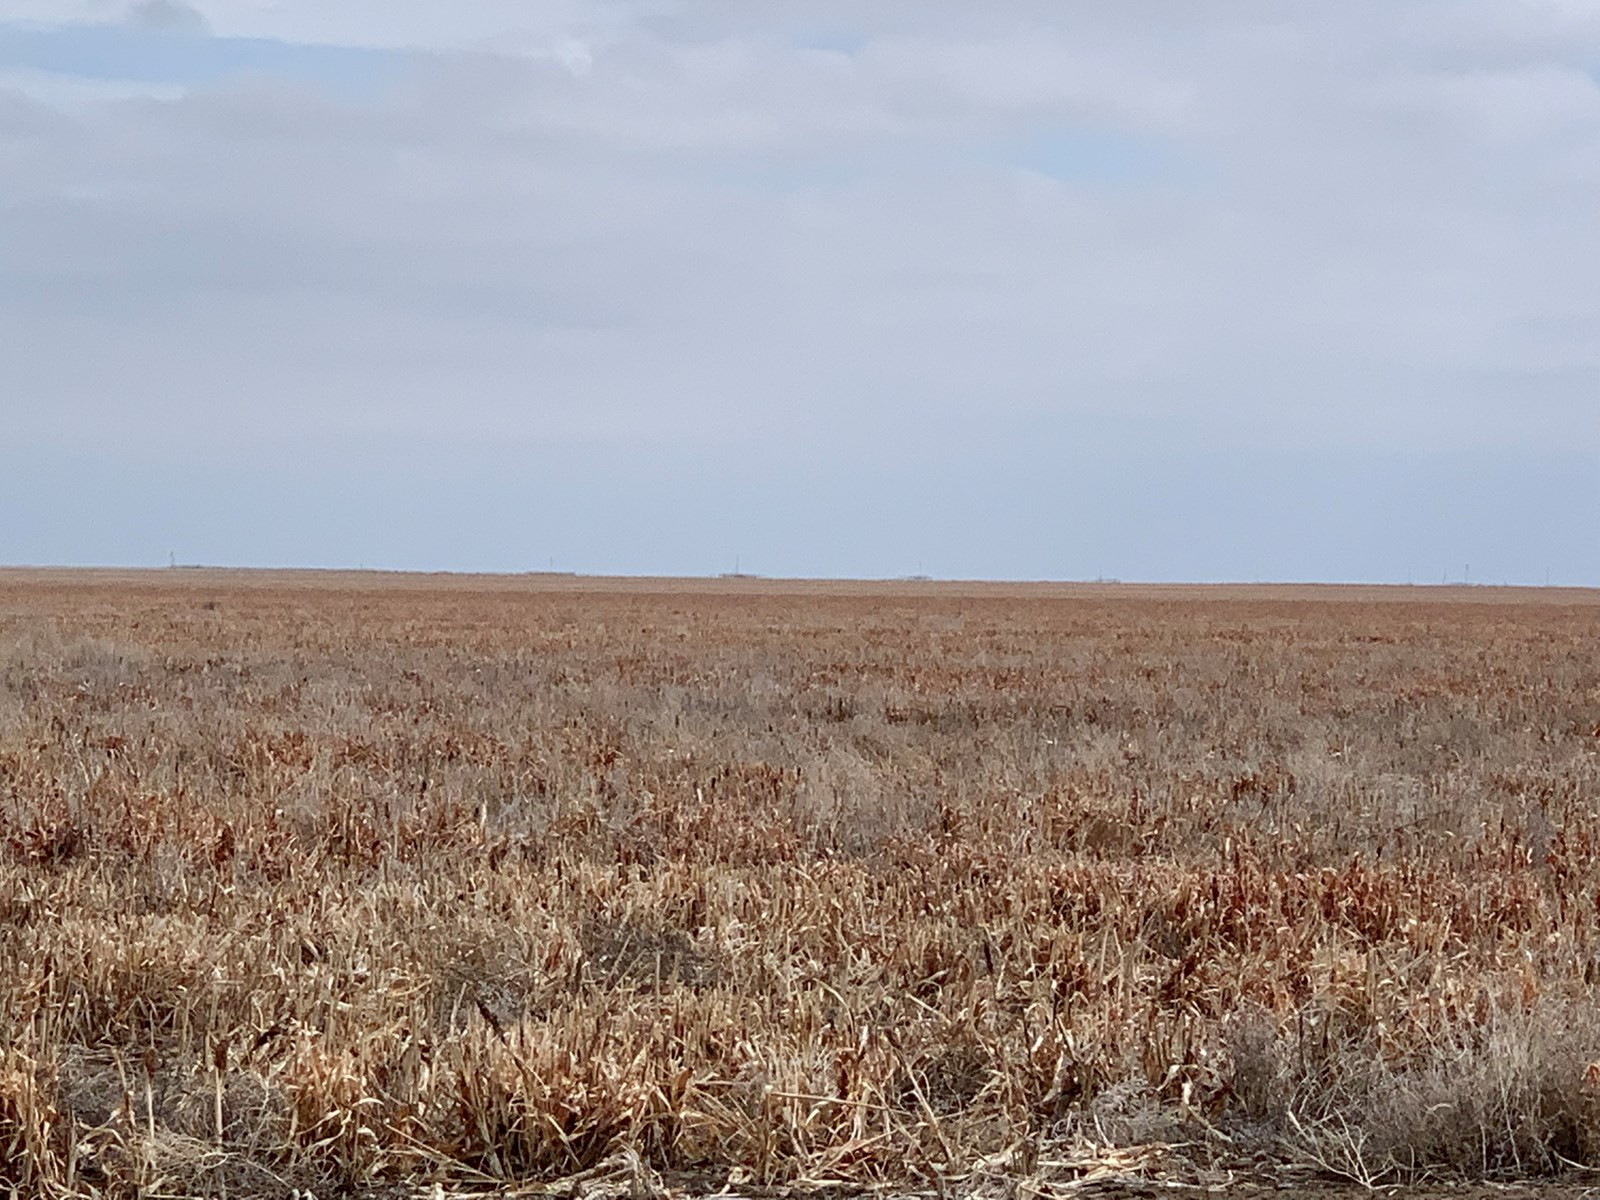 790+/- ACRES OF DRYLAND FOR SALE IN BACA COUNTY, COLORADO